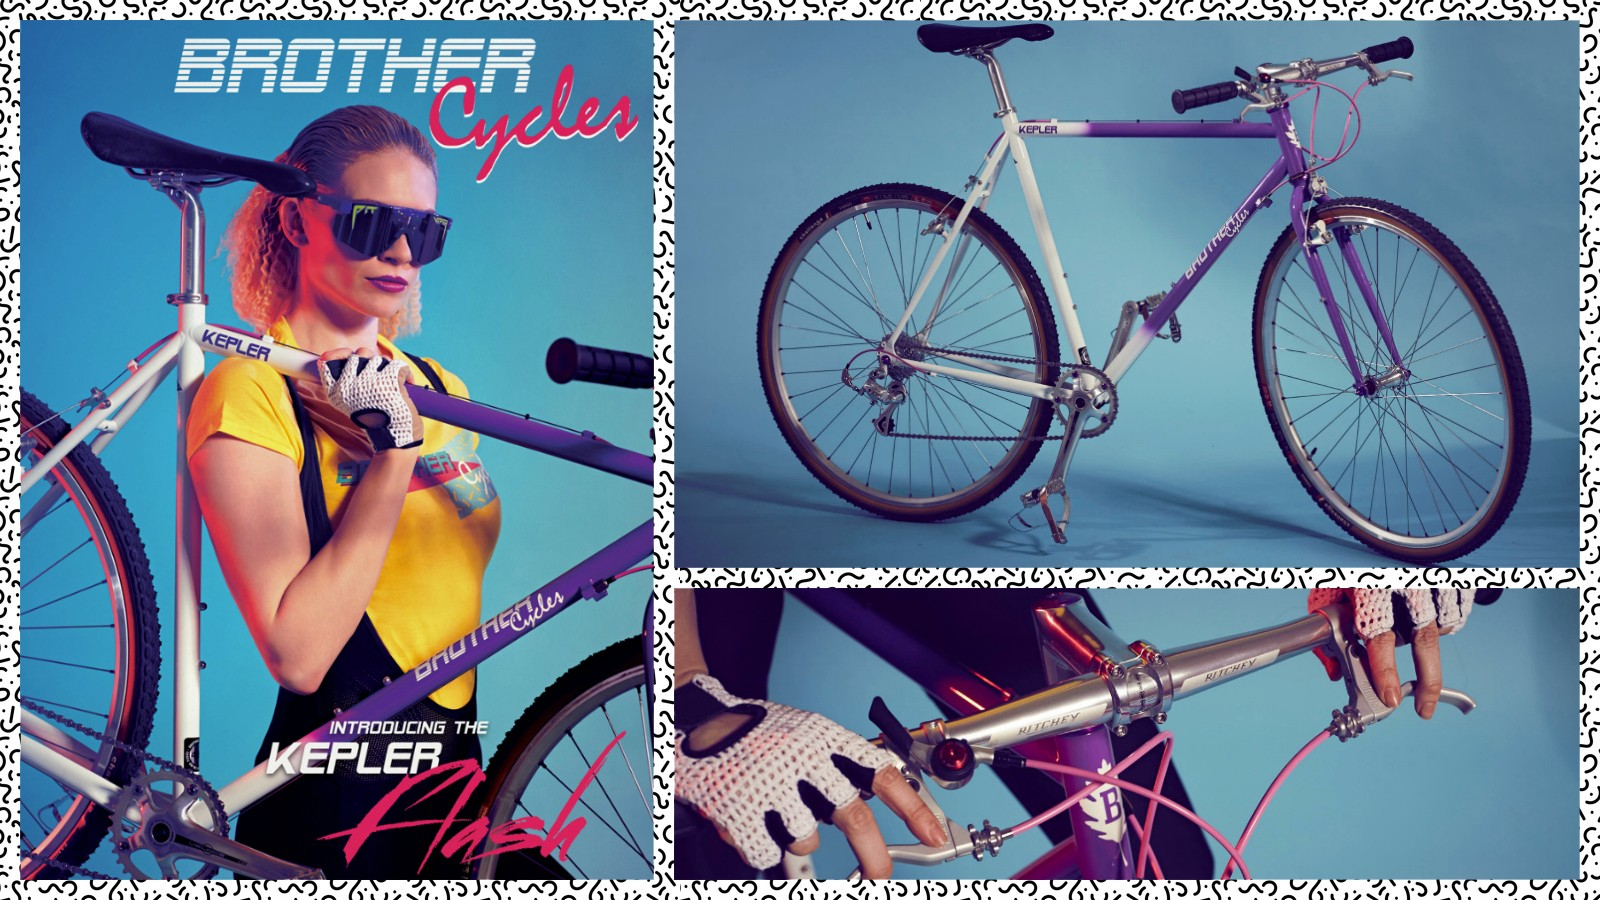 The new Kepler Flash from Brother Cycles is the most radically-retro bike we've seen in a while